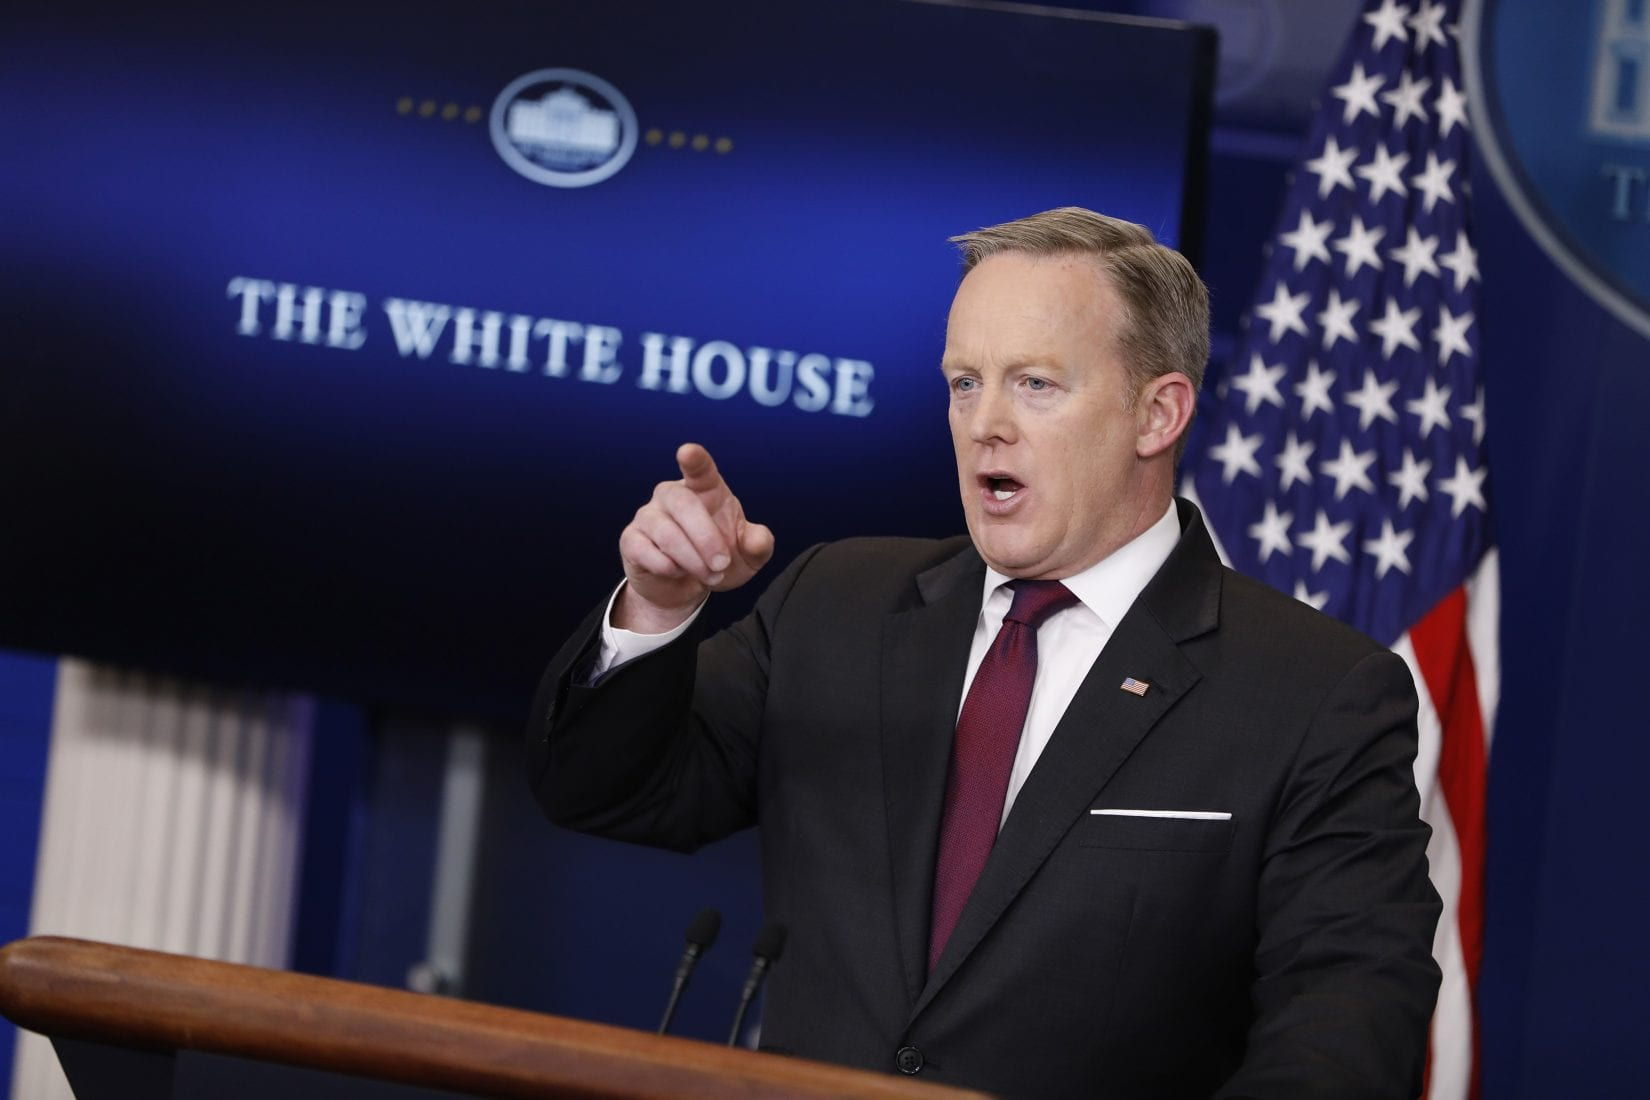 White House Press Secretary Sean Spicer holds the daily briefing Feb. 23, 2017, at the White House in Washington, D.C. (Aaron P. Bernstein, Getty Images)